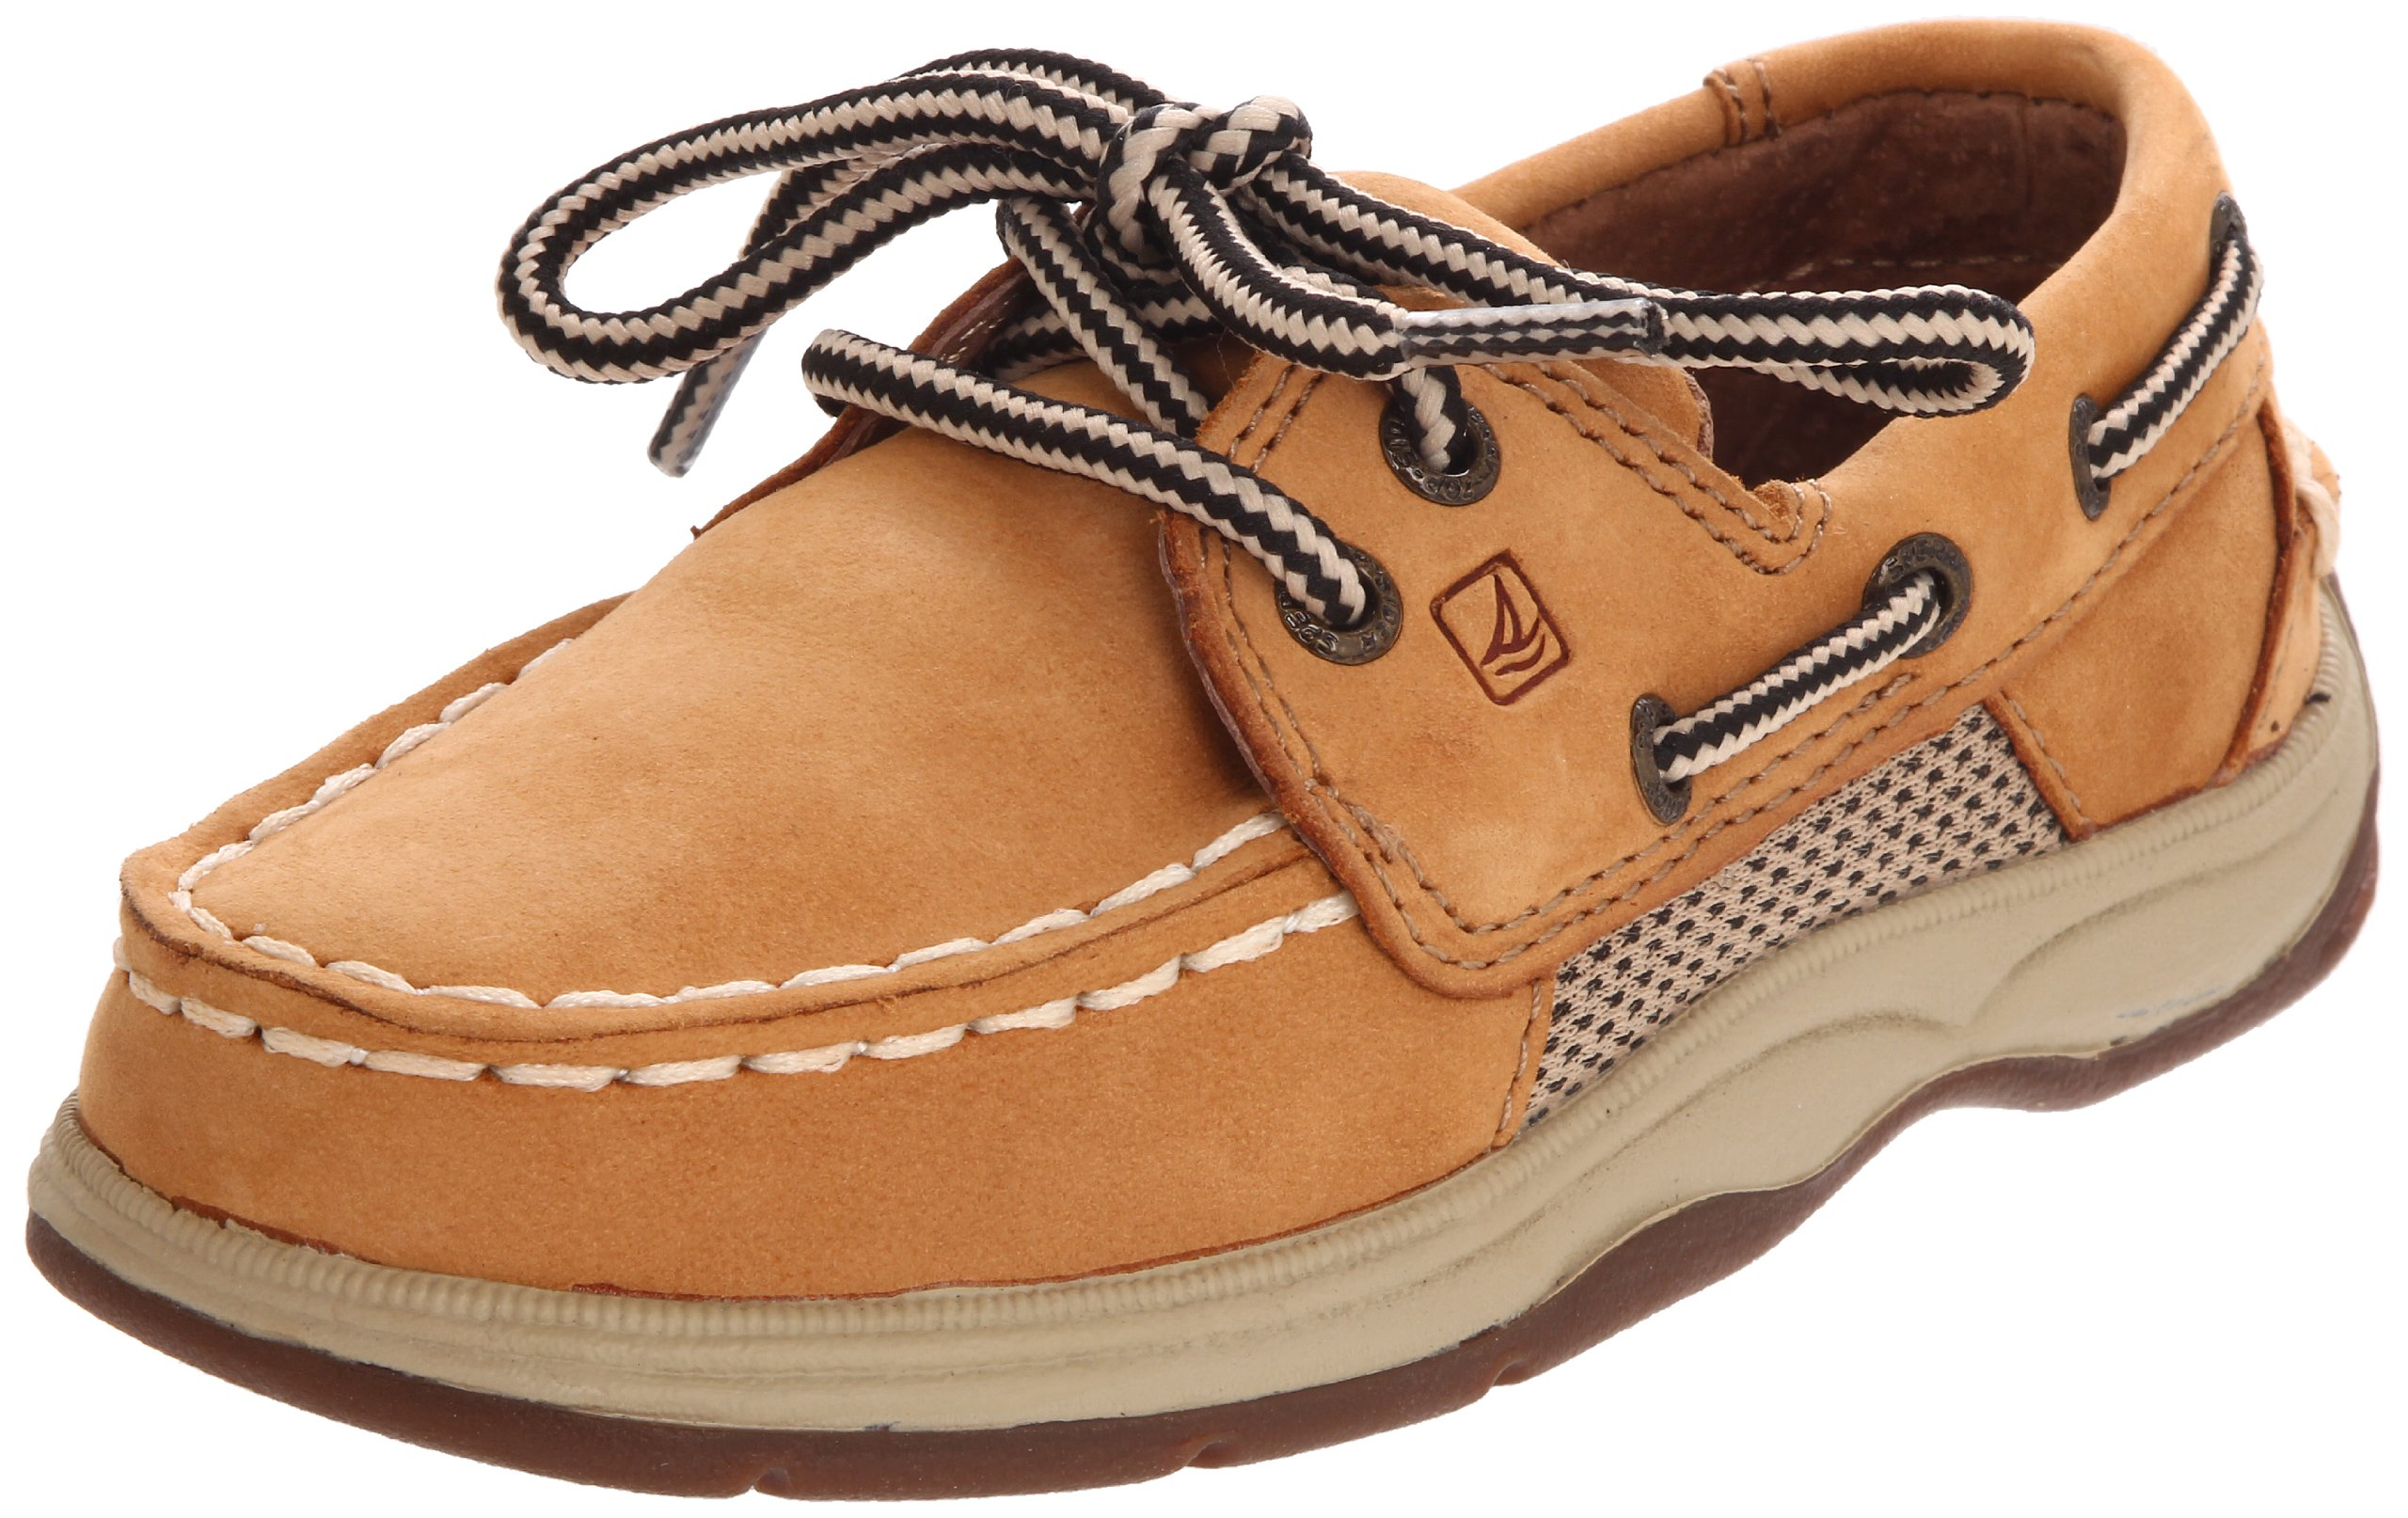 Sperry Top-Sider Intrepid Boat Shoe (Toddler/Little Kid/Big Kid),Linen,10.5 M US Little Kid